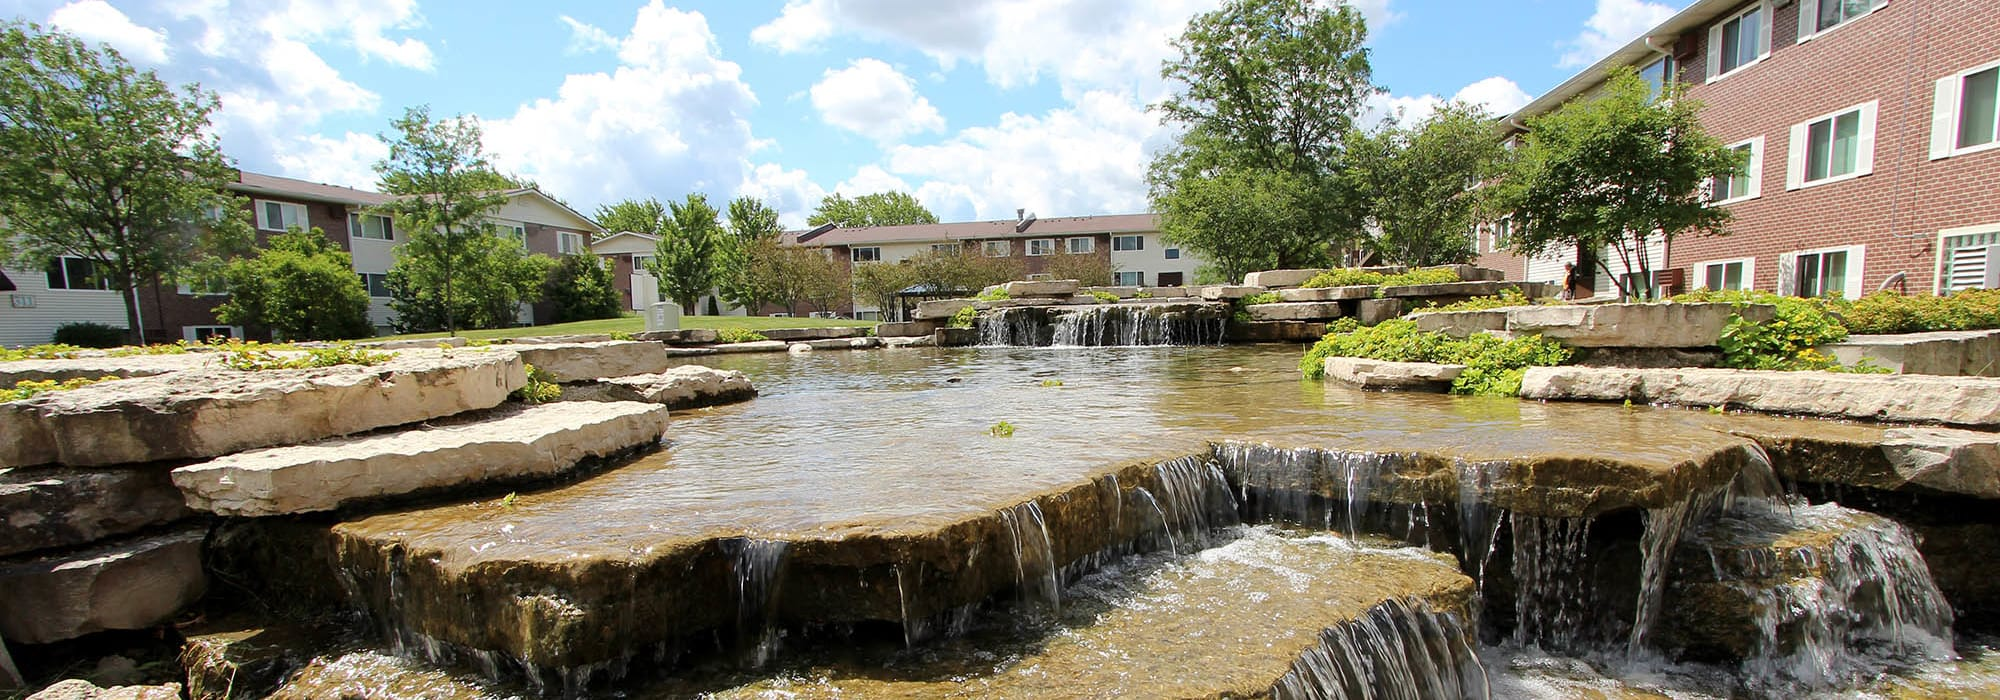 Virtual tours of Riverstone Apartments in Bolingbrook, Illinois